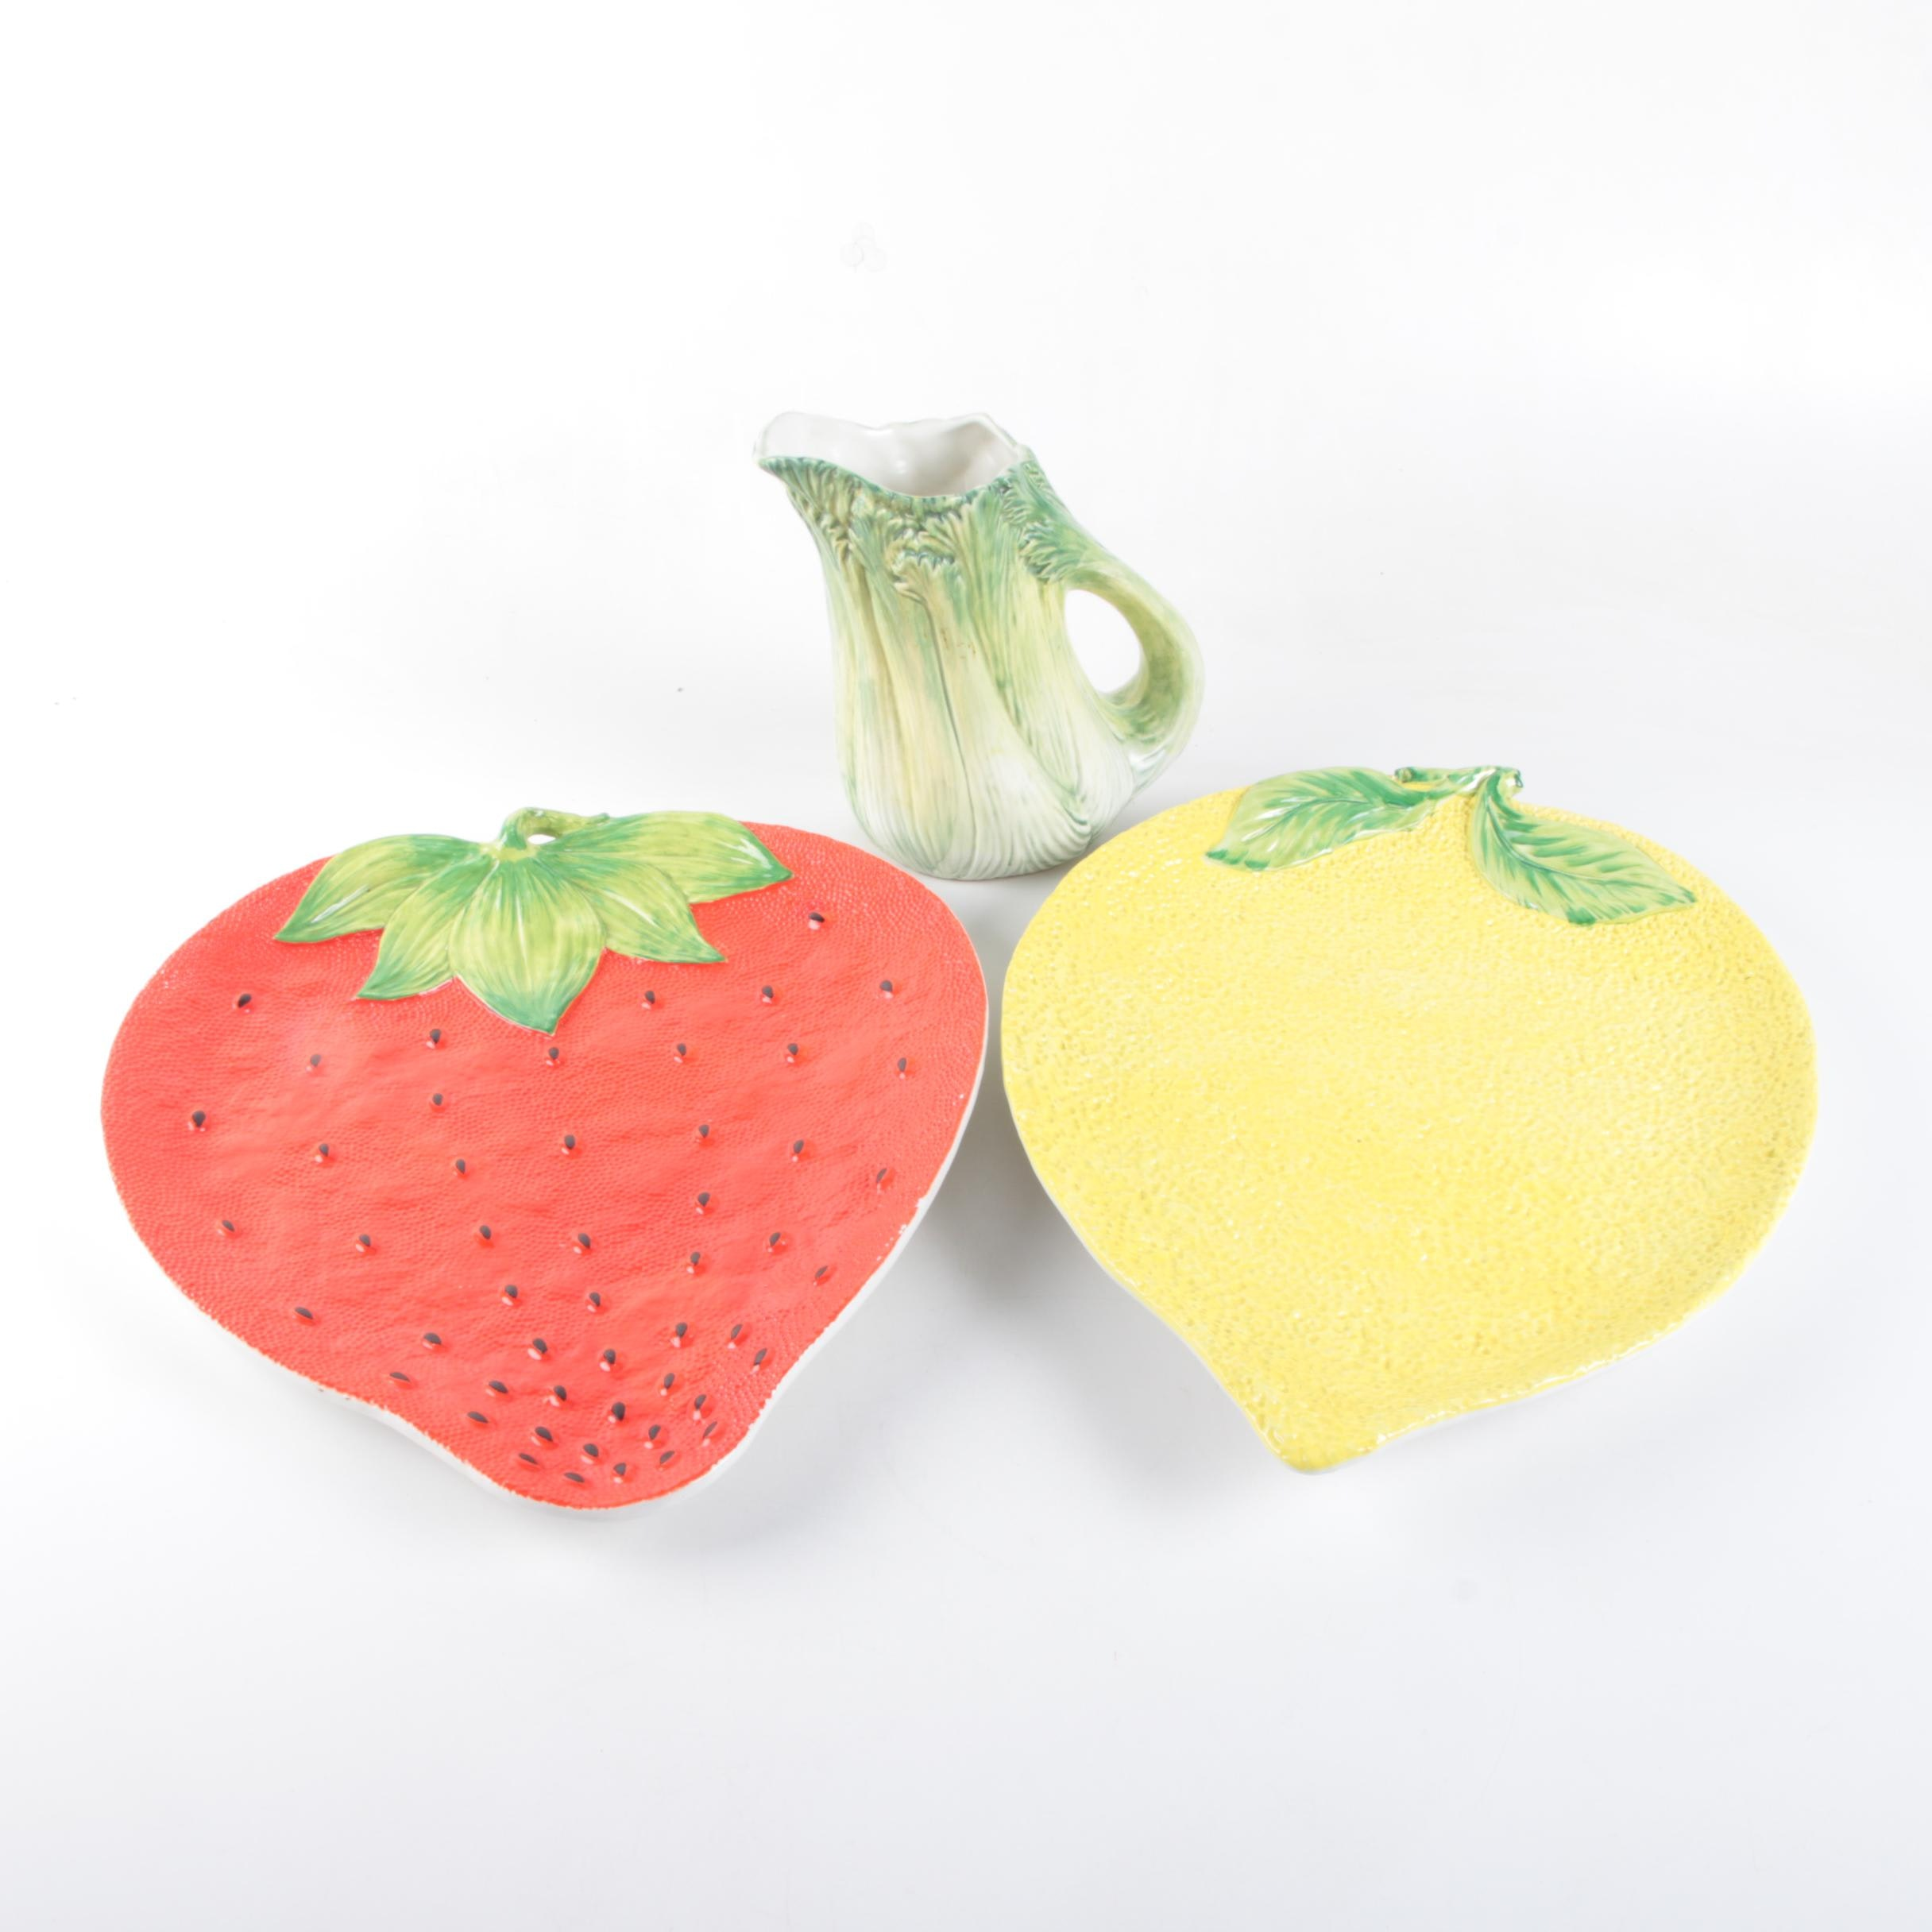 Lemon and Strawberry Tray with Pitcher